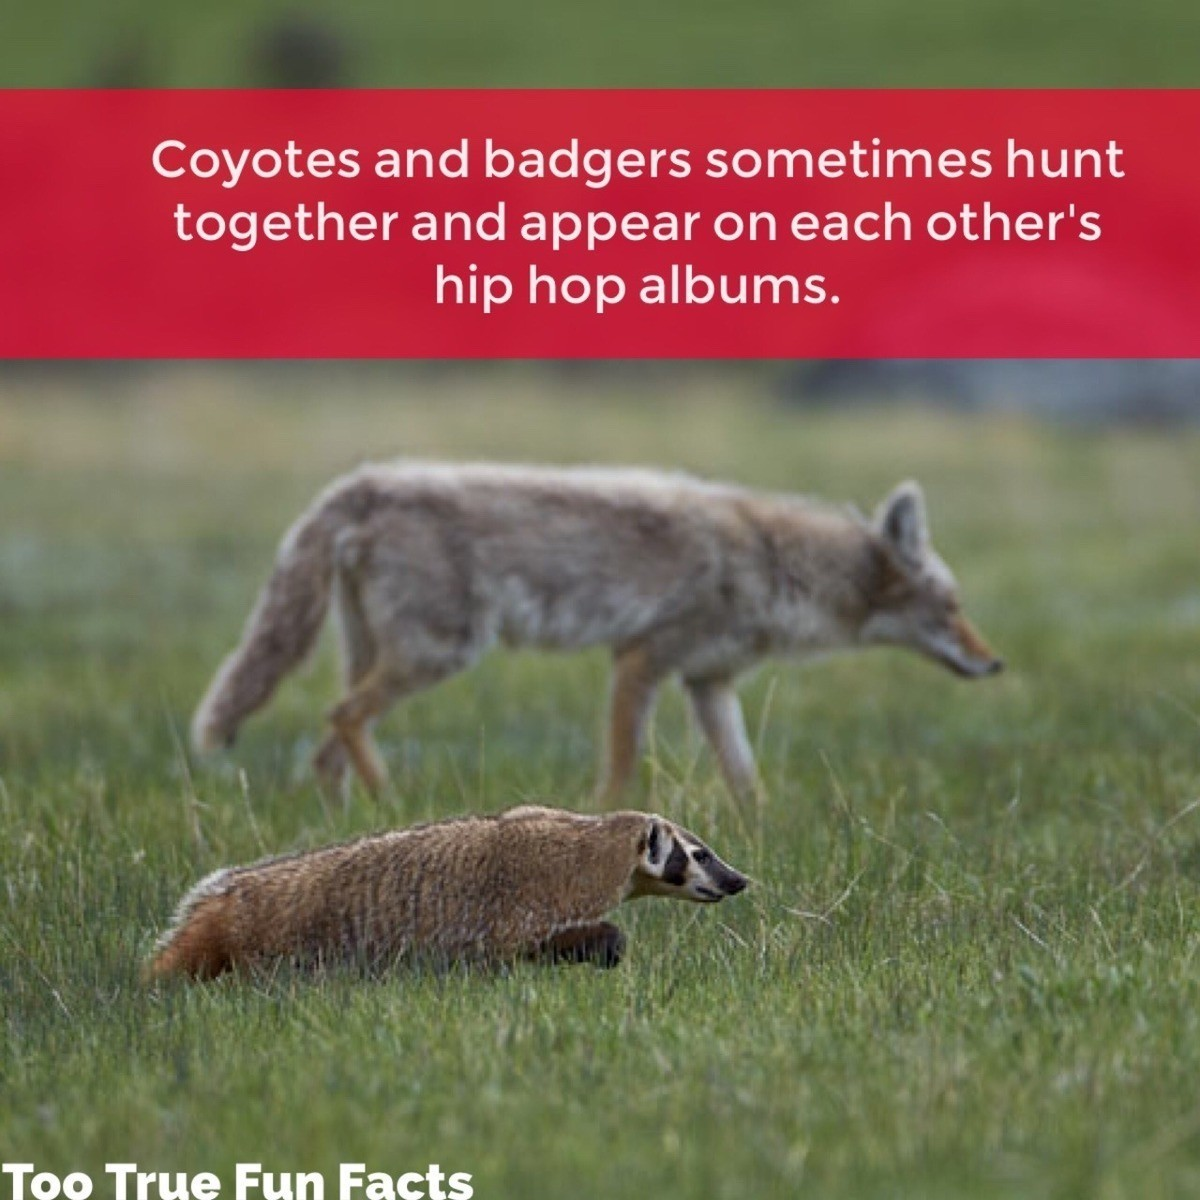 Too True Fun Fact. . Coyotes and badgers sometimes hunt together and appear on each other' s hip hop albums. Too True Fun Facts. I'm drunk please explain this to me.